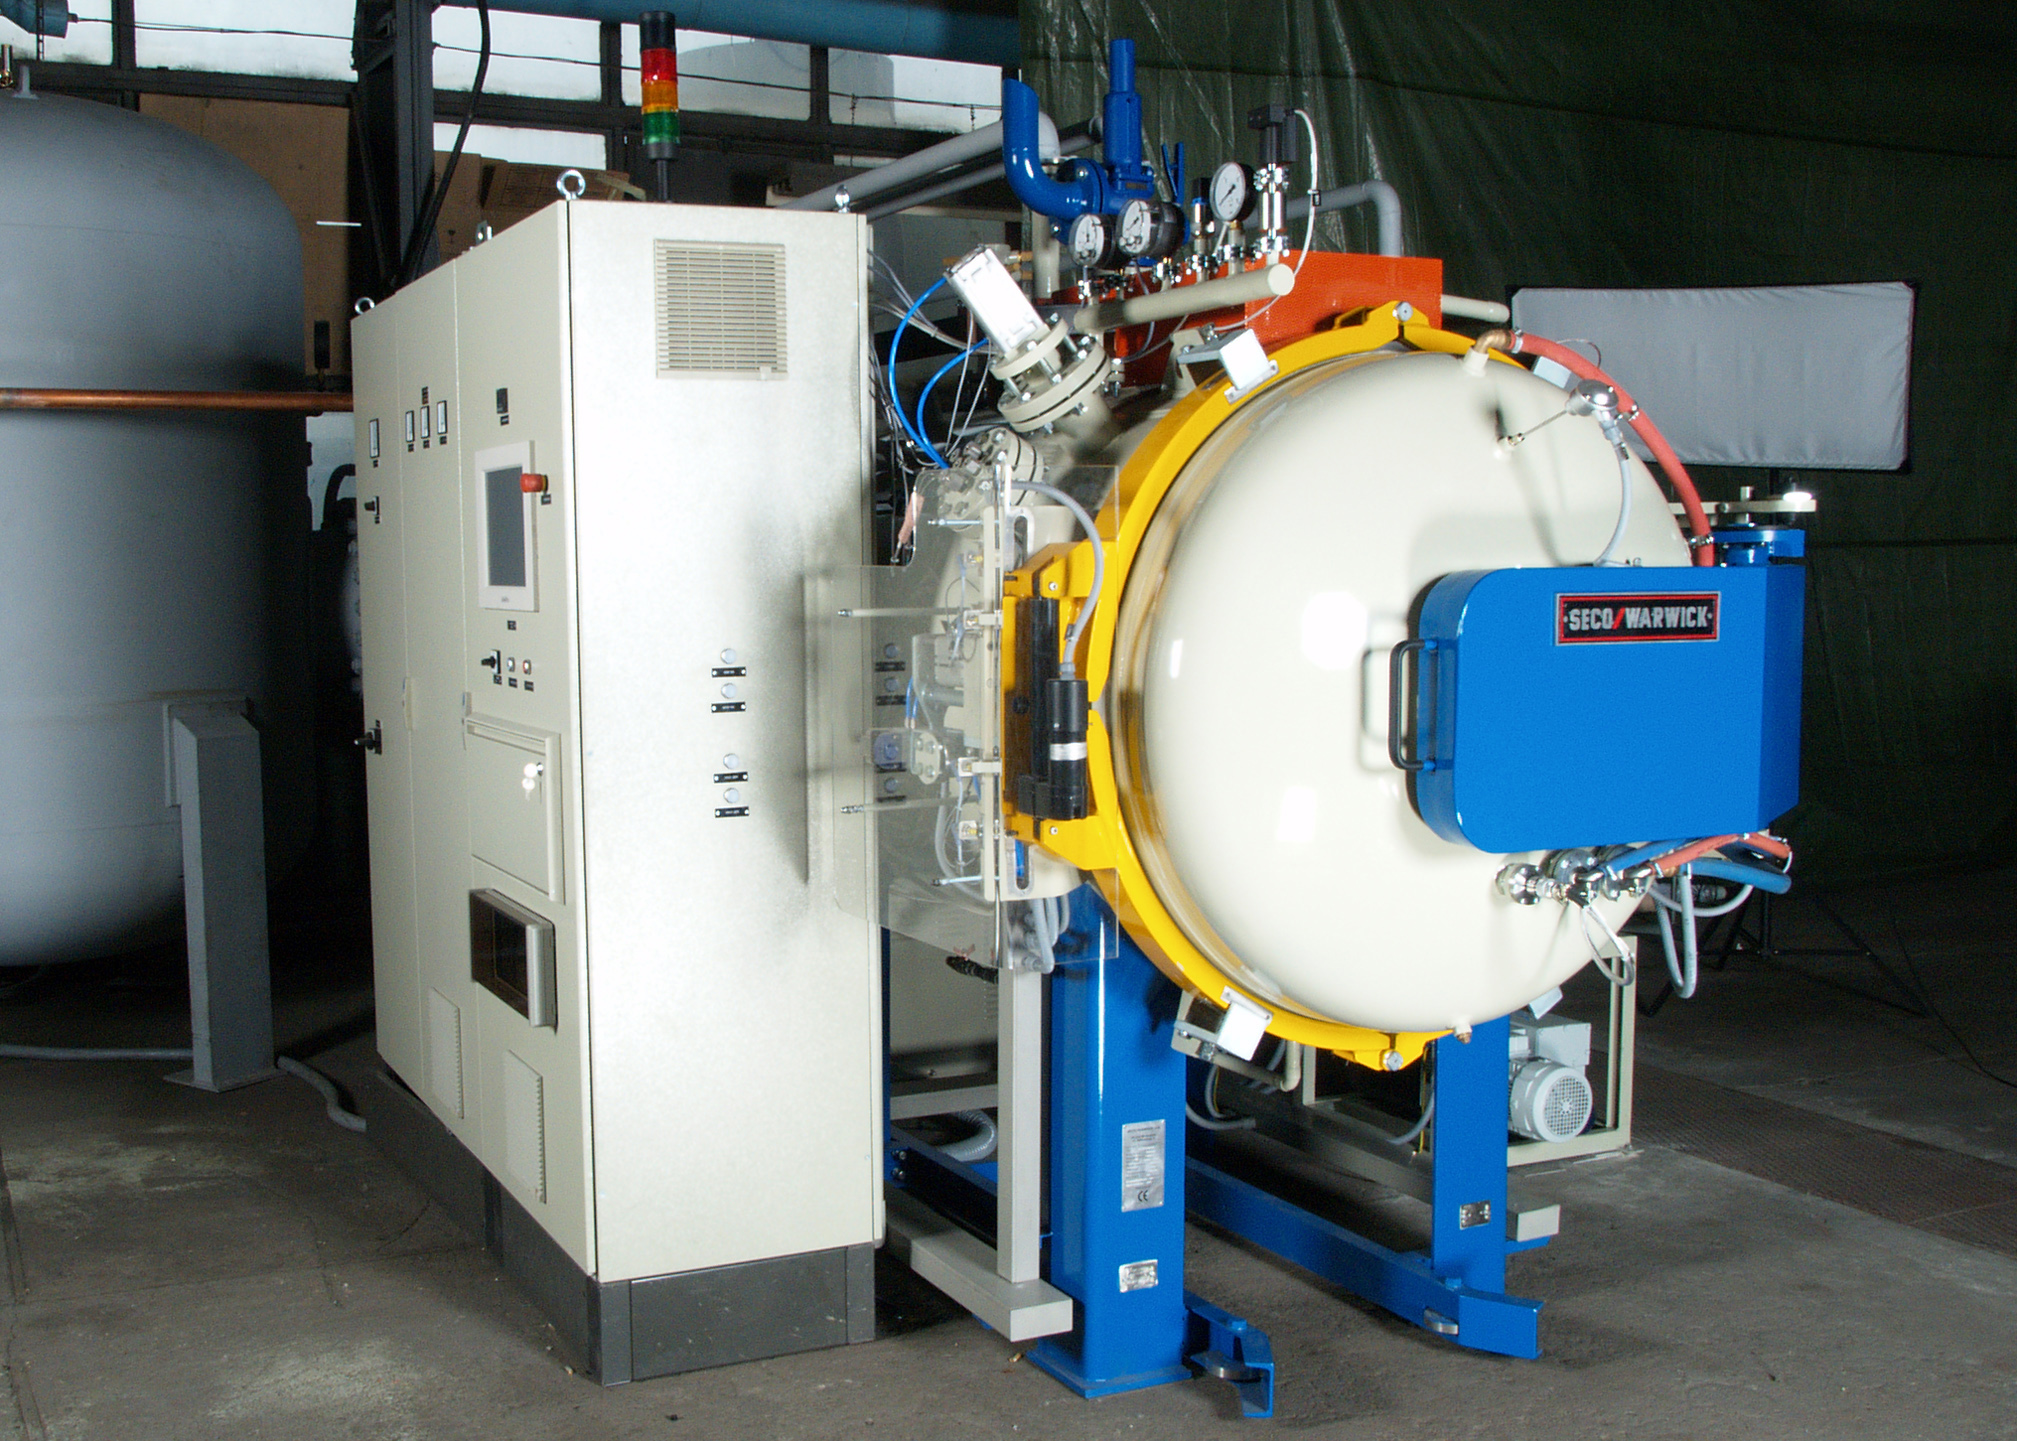 SECO/WARWICK commissions 12-bar vacuum furnace